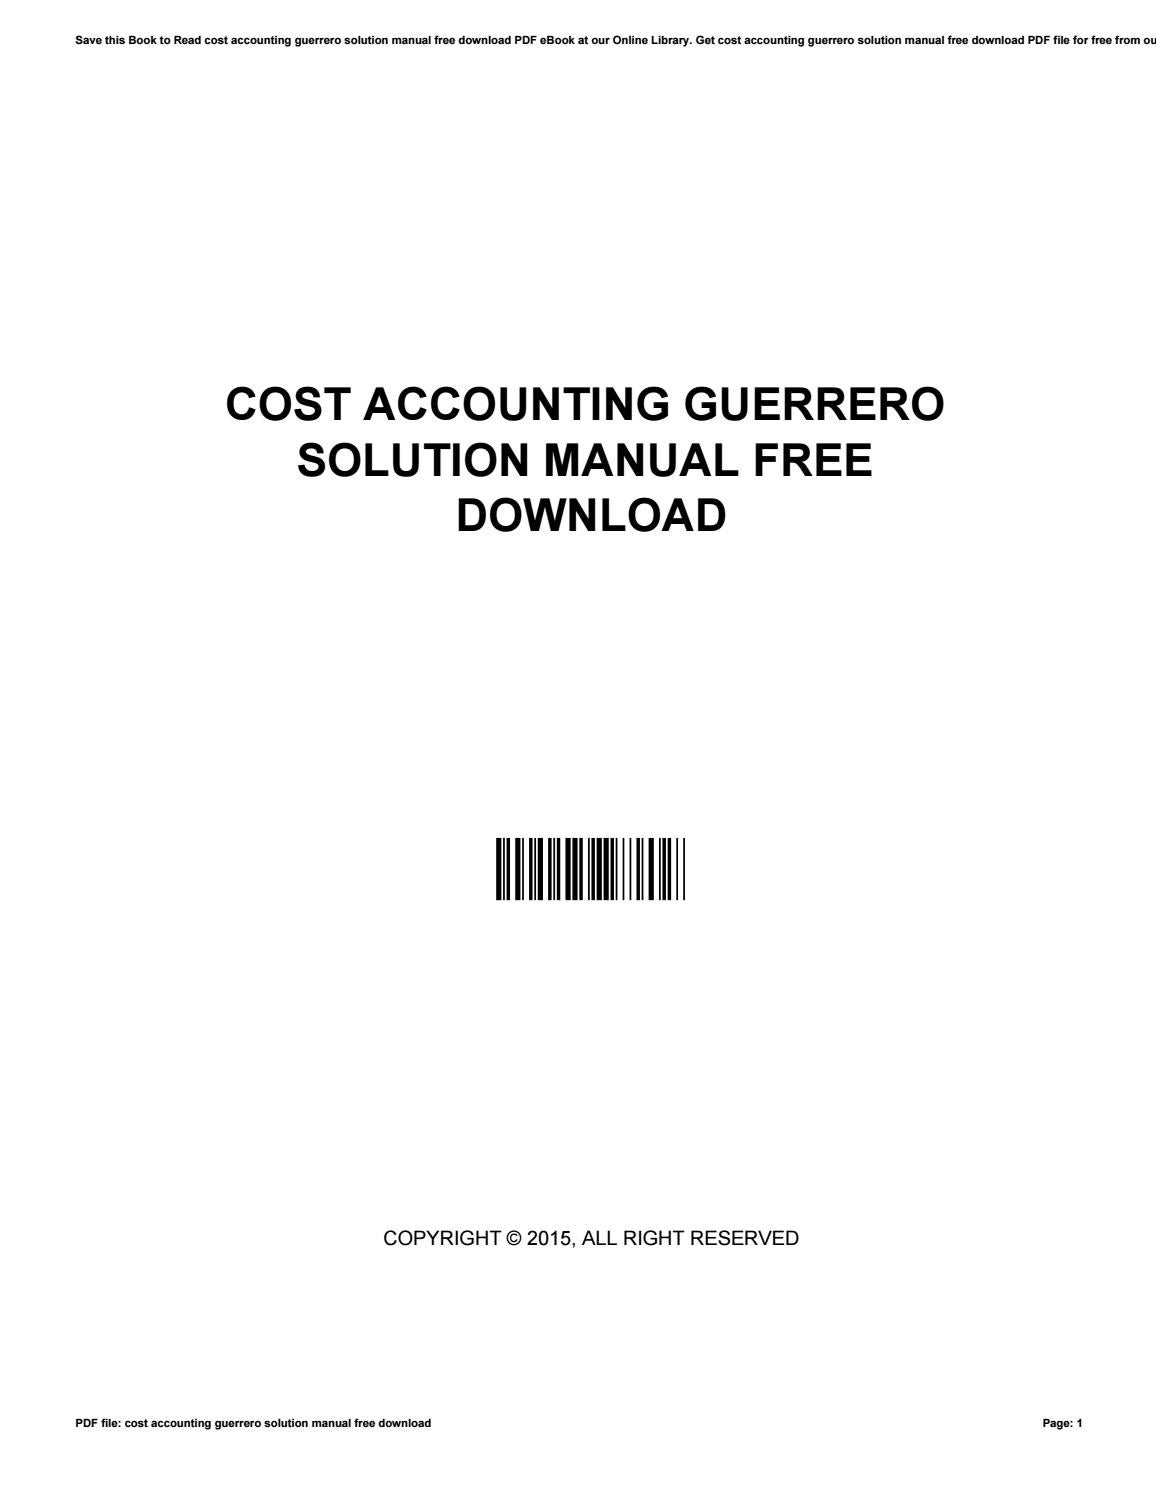 Cost accounting guerrero solution manual free download by HaroldLinden2744  - issuu